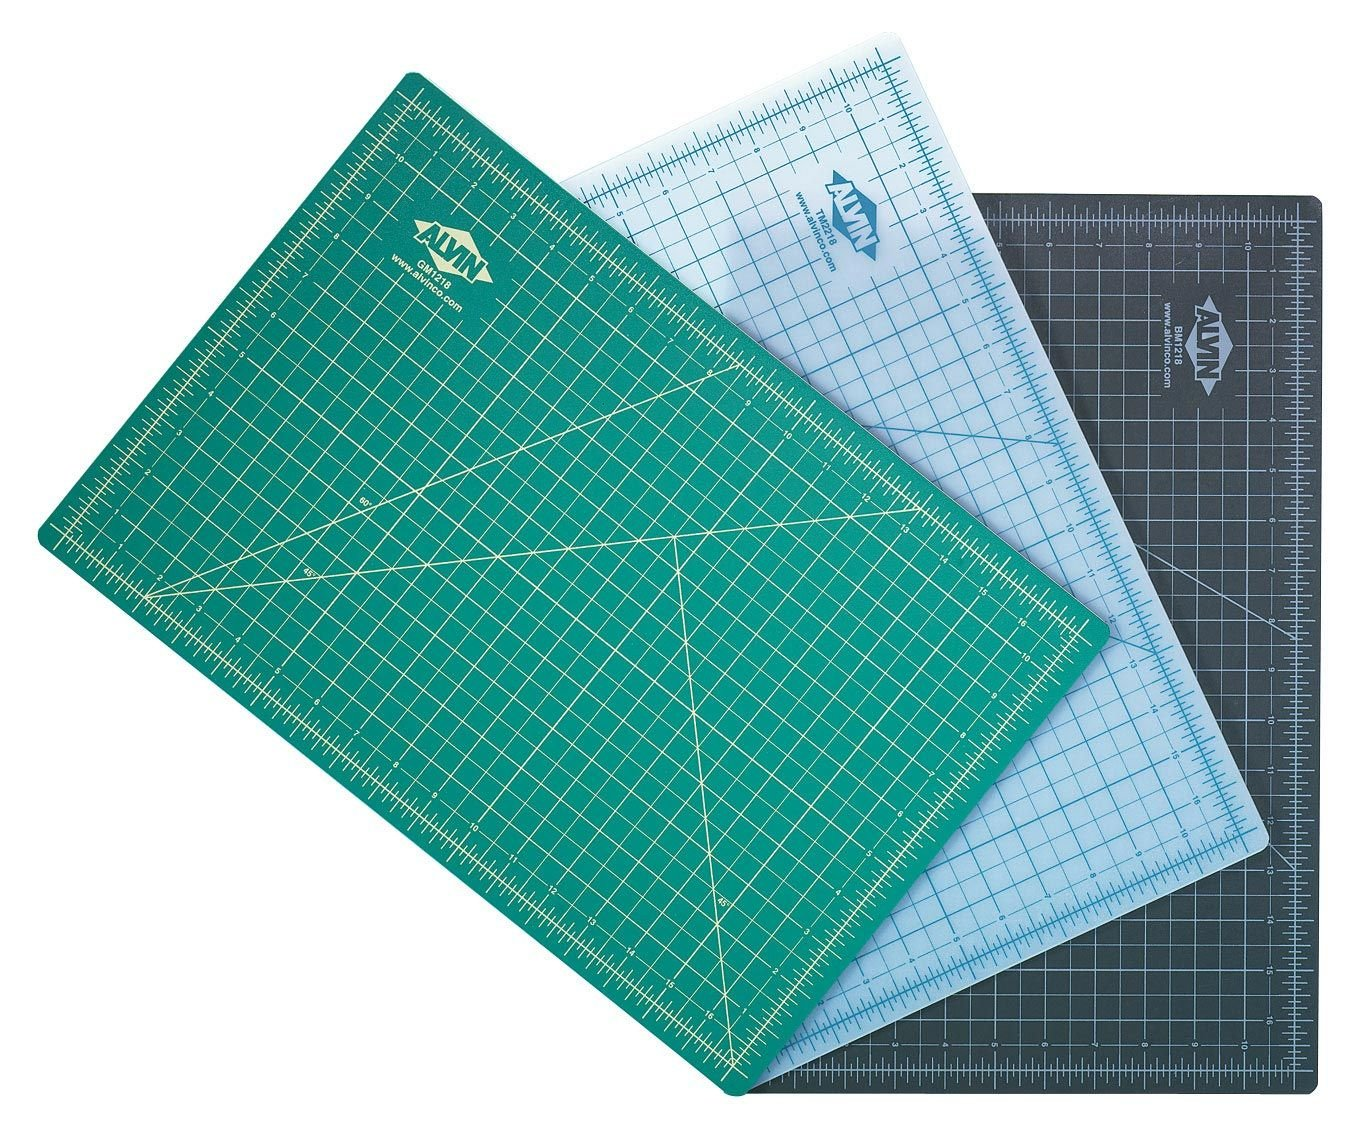 Alvin TM2248 TM Series Cutting Mats, 36 x 48 inches, Black by Alvin (Image #1)